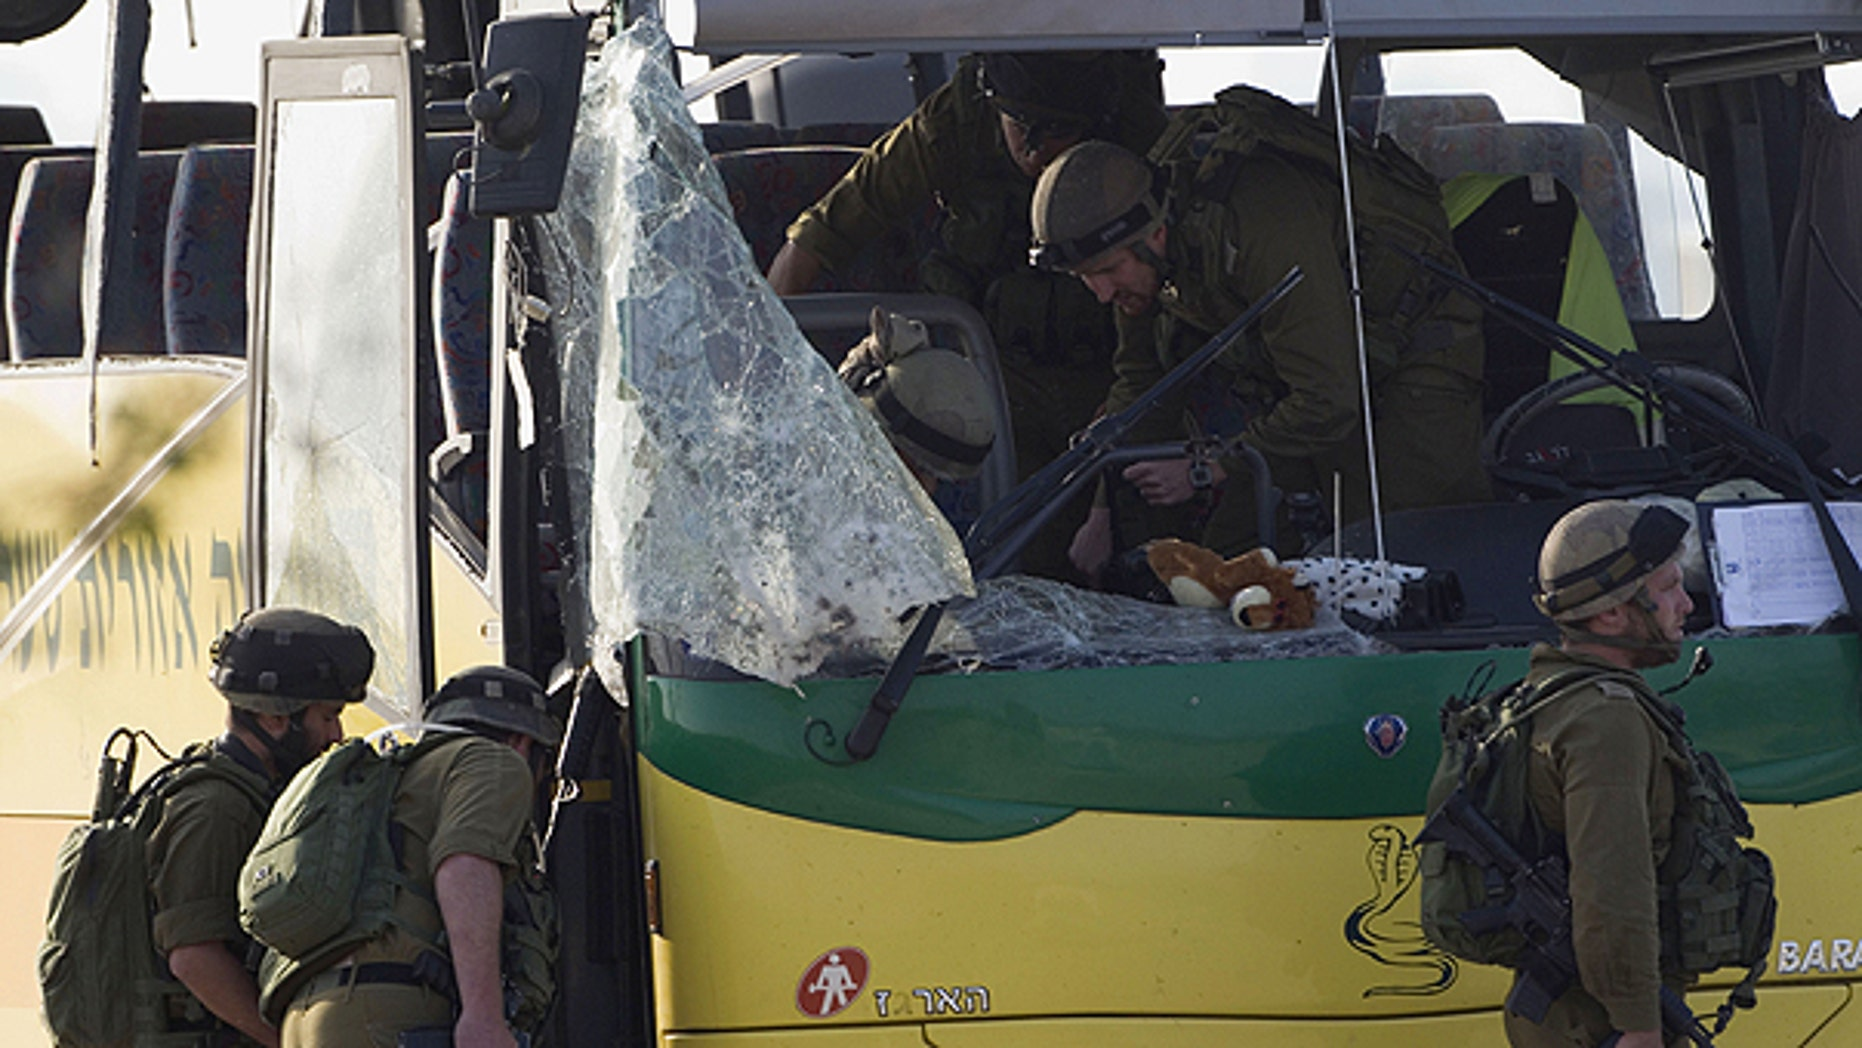 April 7: Israeli soldiers inspect a school bus hit by an anti-tank missile fired from the Gaza Strip near the border between southern Israel and Gaza at Sa'ad, Israel.